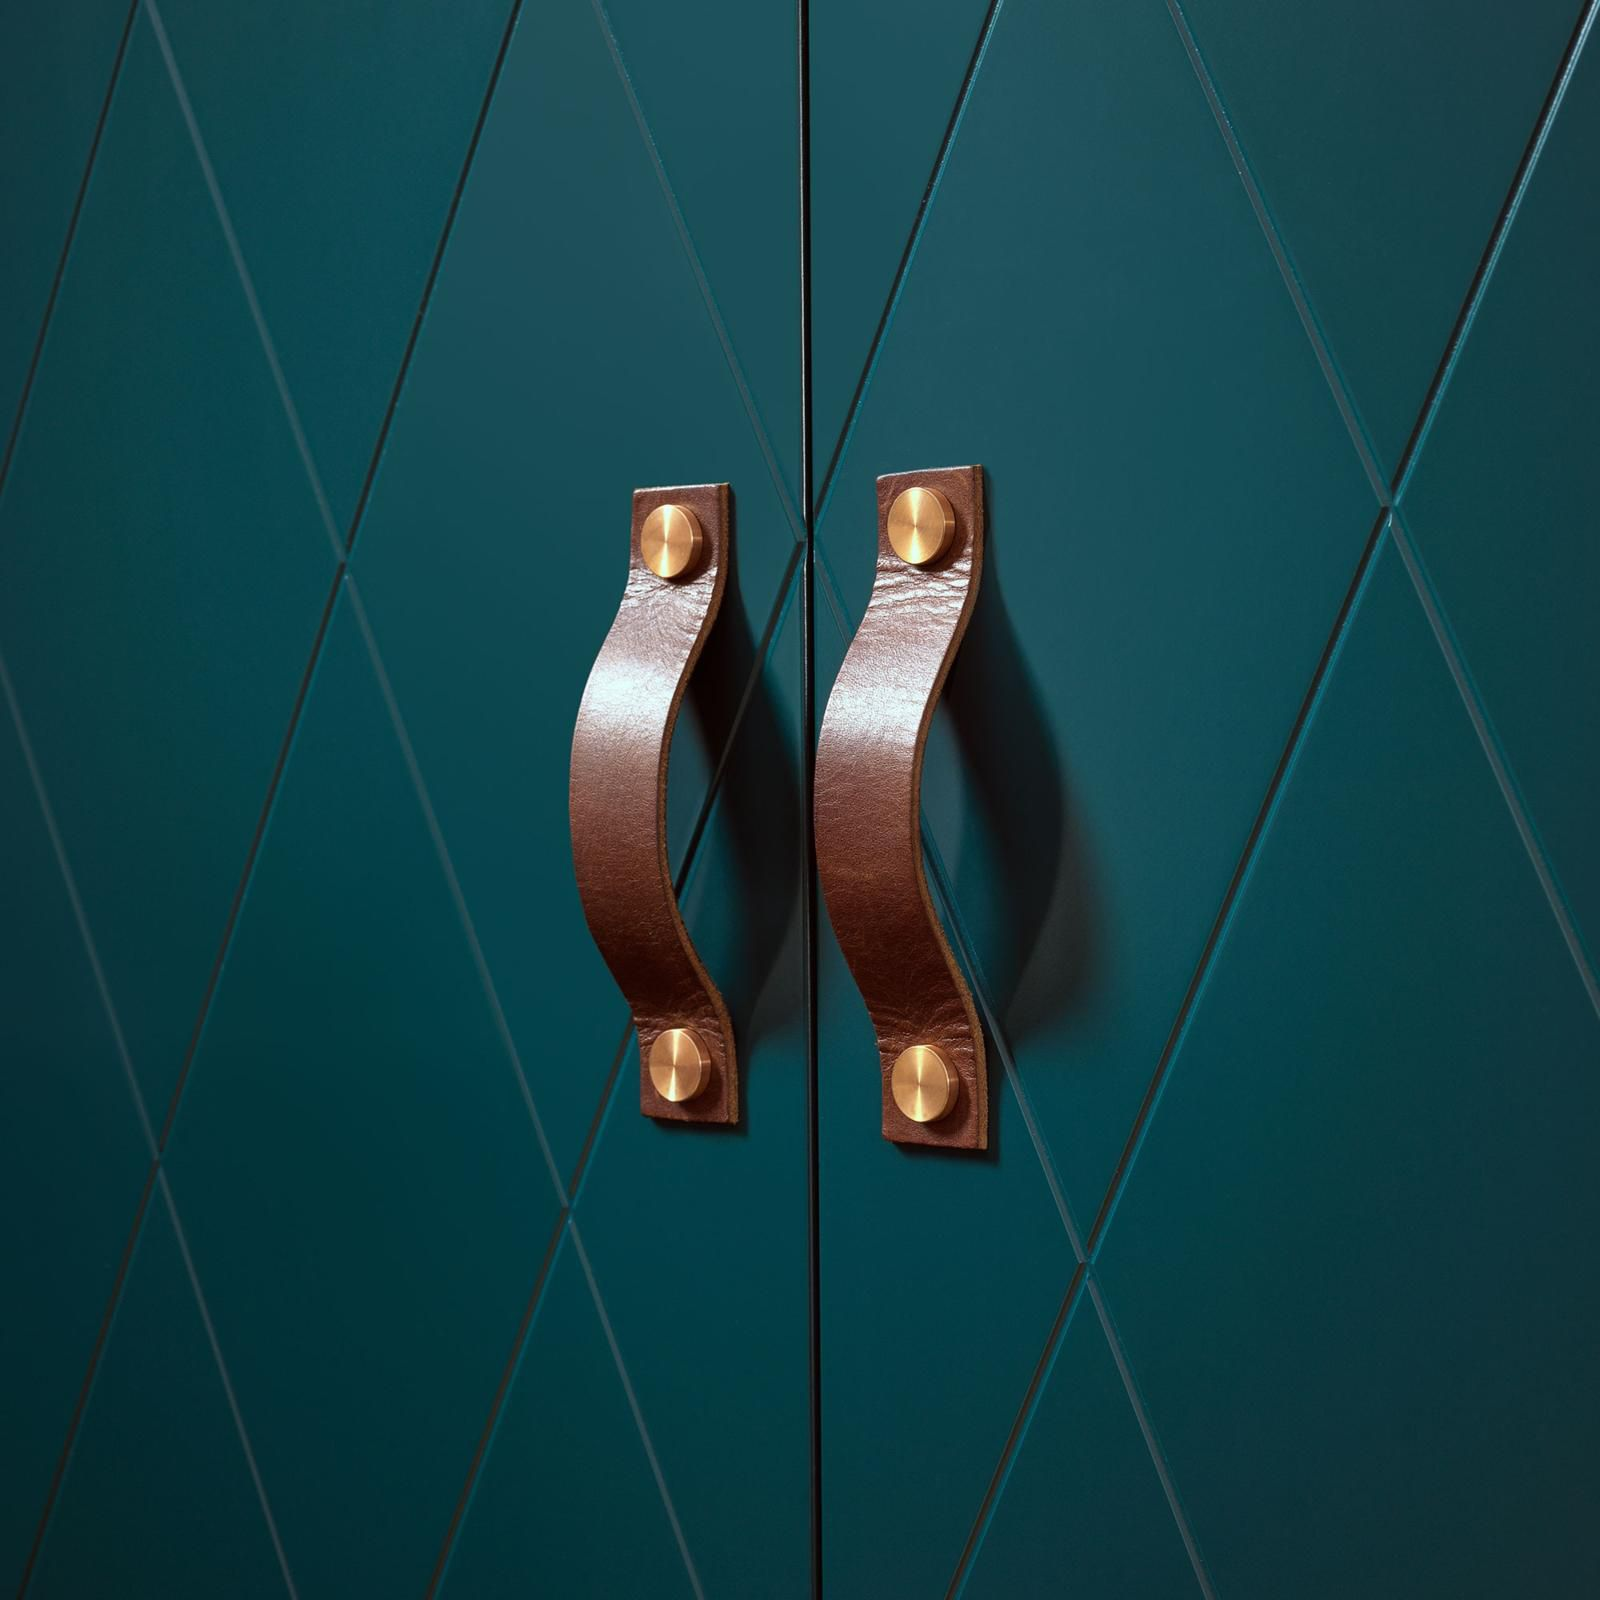 Teal cabinet doors with brown leather pulls